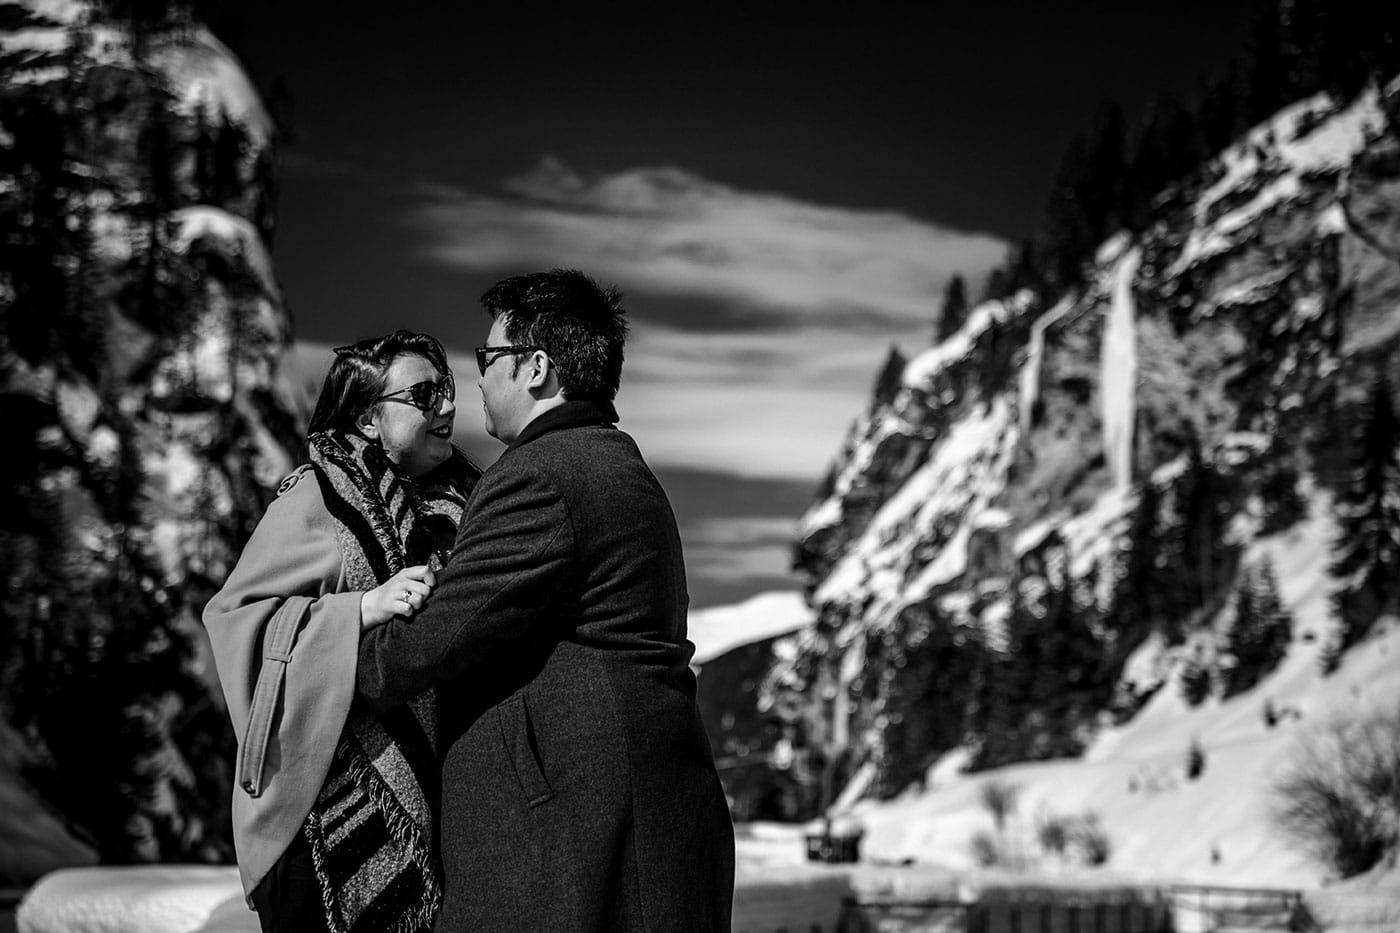 Couple photographer Courchevel Photographe de couple Courchevel